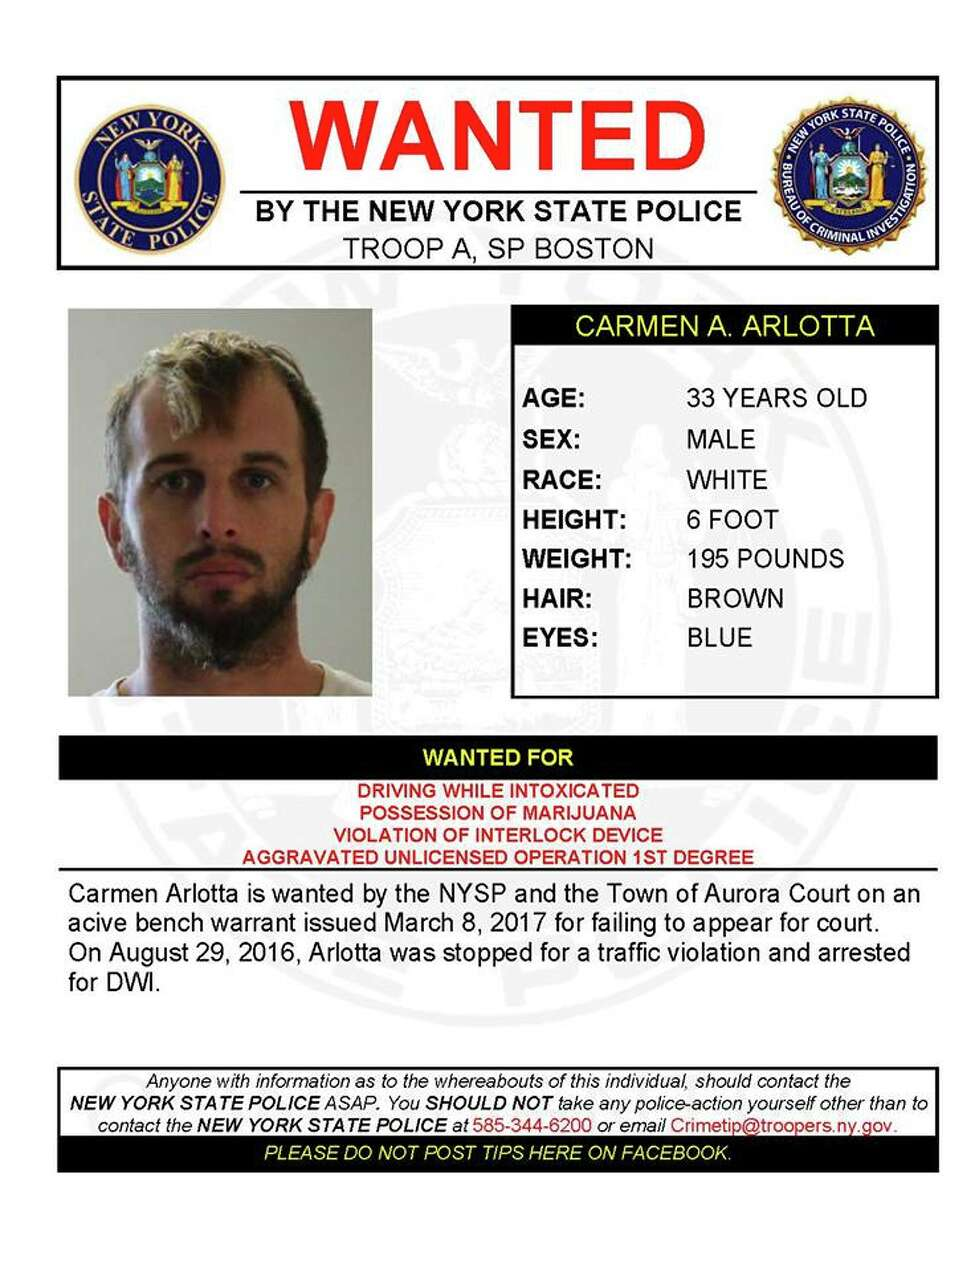 Carmen Arlotta, 33, is wanted by State Police and the Town of Aurora Court in Cayuga County on an active bench warrant issued March 8, 2017, for failing to appear for court. On August 29, 2016, Arlotta was stopped for a traffic violation and arrested for DWI. He is wanted for driving while intoxicated, possession of marijuana, violation of interlock device and aggravated unlicensed operation.